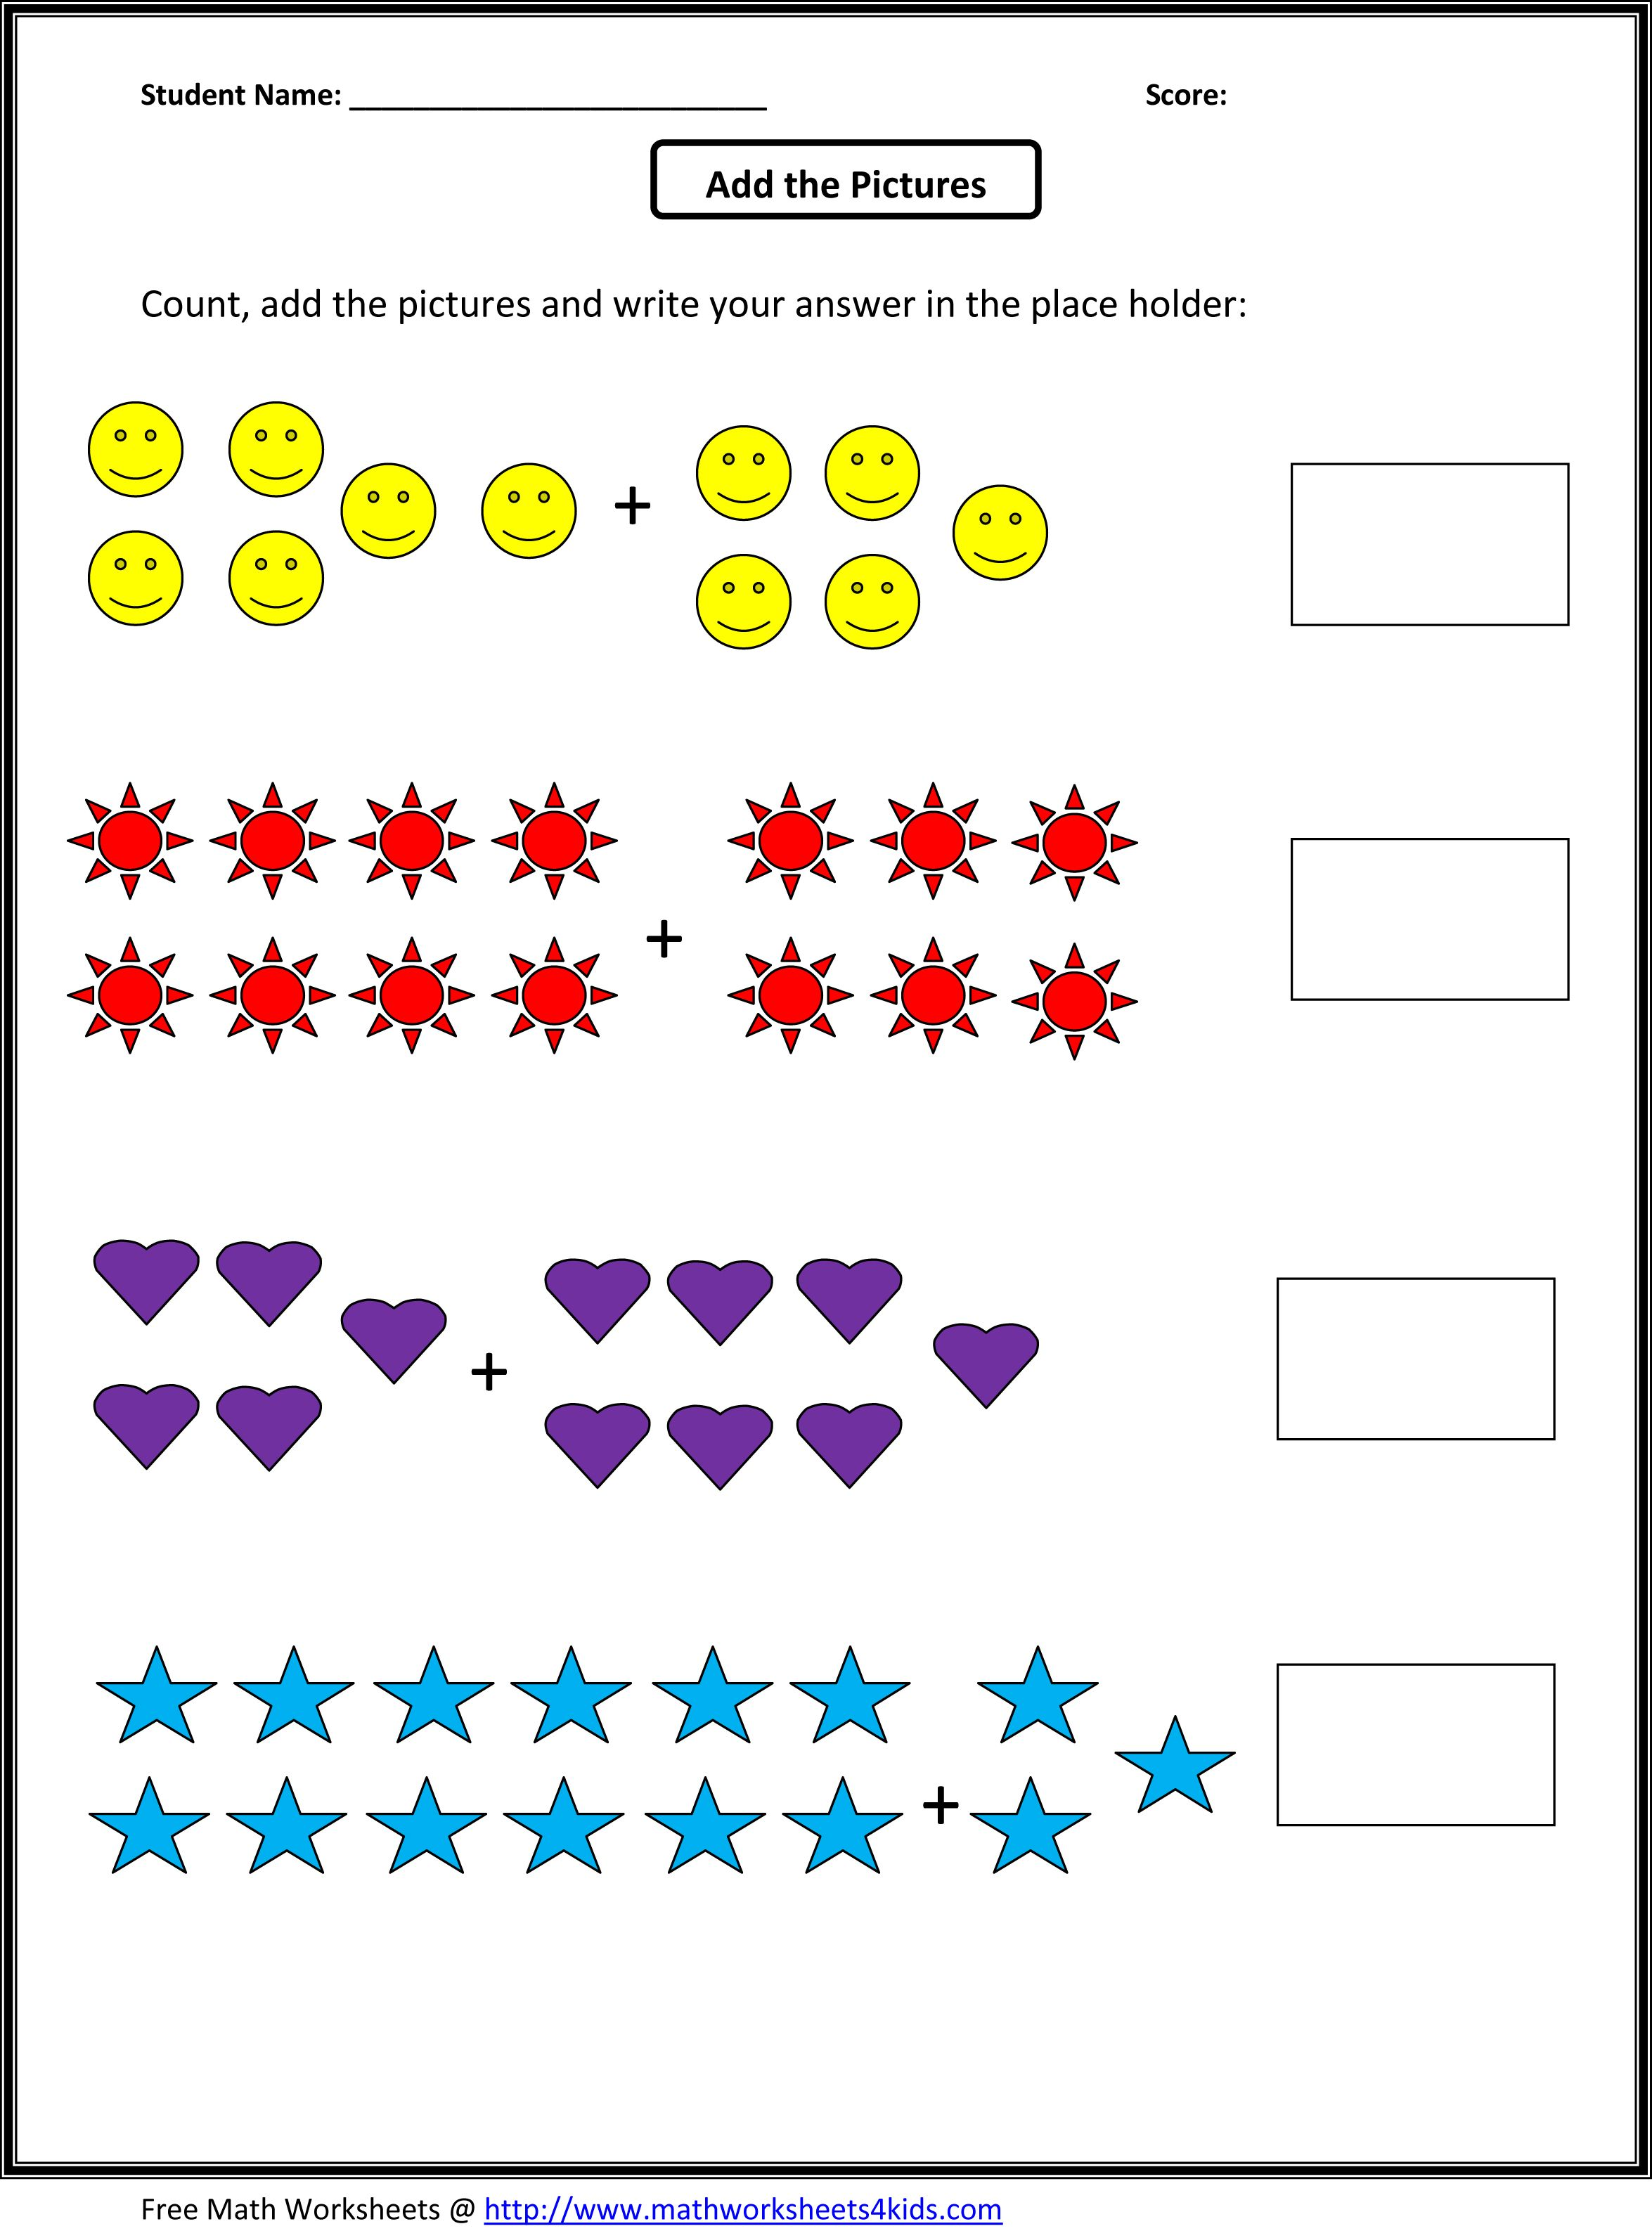 Aldiablosus  Inspiring Worksheet For Math Grade   Coffemix With Remarkable  Images About School On Pinterest  Mental Maths Worksheets  With Beautiful Worksheets On Kinds Of Sentences Also Printable Sentence Structure Worksheets In Addition Square Numbers Worksheet Ks And Negative Numbers On A Number Line Worksheet As Well As Reading Comprehension Worksheet For Grade  Additionally Worksheets For Word Families From Coffemixcom With Aldiablosus  Remarkable Worksheet For Math Grade   Coffemix With Beautiful  Images About School On Pinterest  Mental Maths Worksheets  And Inspiring Worksheets On Kinds Of Sentences Also Printable Sentence Structure Worksheets In Addition Square Numbers Worksheet Ks From Coffemixcom